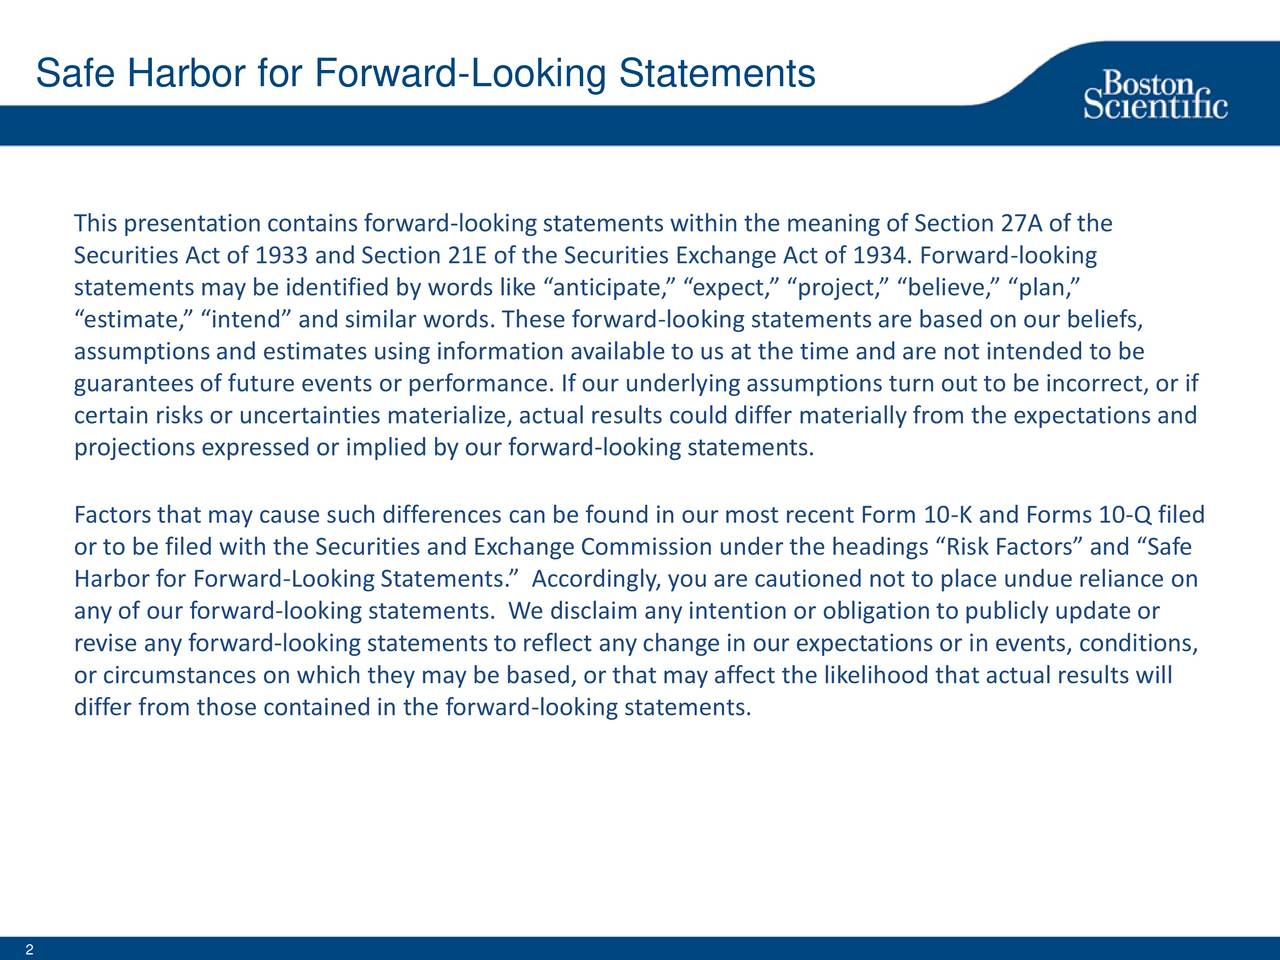 This presentation contains forward-looking statements within the meaning of Section 27A of the Securities Act of 1933 and Section 21E of the Securities Exchange Act of 1934. Forward-looking statements may be identified by words like anticipate, expect, project, believe, plan, estimate, intend and similar words. These forward-looking statements are based on our beliefs, assumptions and estimates using information available to us at the time and are not intended to be guarantees of future events or performance. If our underlying assumptions turn out to be incorrect, or if certain risks or uncertainties materialize, actual results could differ materially from the expectations and projections expressed or implied by our forward-looking statements. Factors that may cause such differences can be found in our most recent Form 10-K and Forms 10-Q filed or to be filed with the Securities and Exchange Commission under the headings Risk Factors and Safe Harbor for Forward-Looking Statements. Accordingly, you are cautioned not to place undue reliance on any of our forward-looking statements. We disclaim any intention or obligation to publicly update or revise any forward-looking statements to reflect any change in our expectations or in events, conditions, or circumstances on which they may be based, or that may affect the likelihood that actual results will differ from those contained in the forward-looking statements.